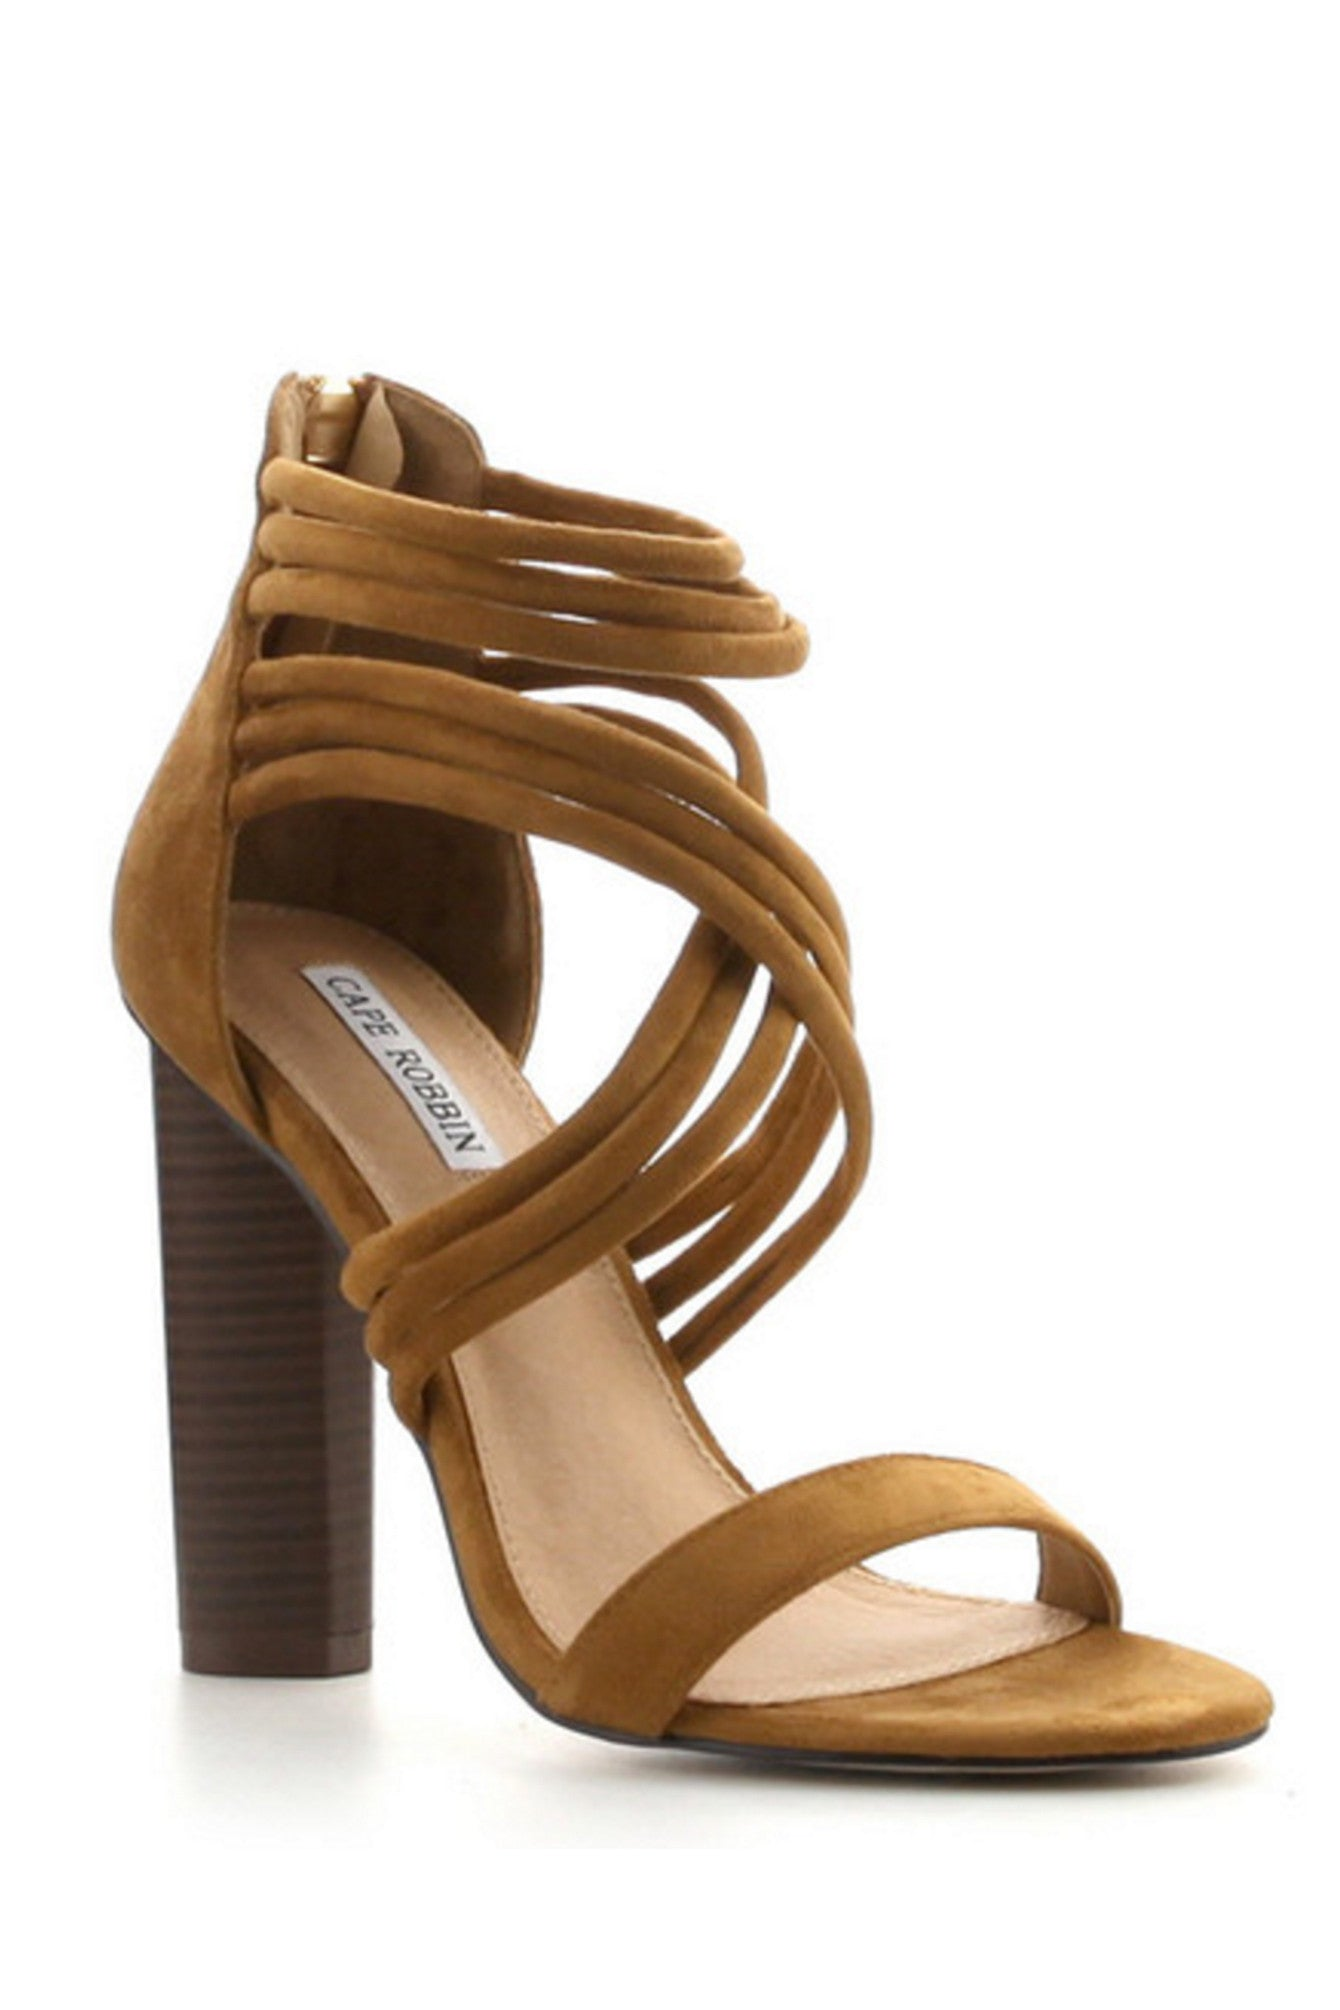 Camel Front Cross Strap Chunky High Heel